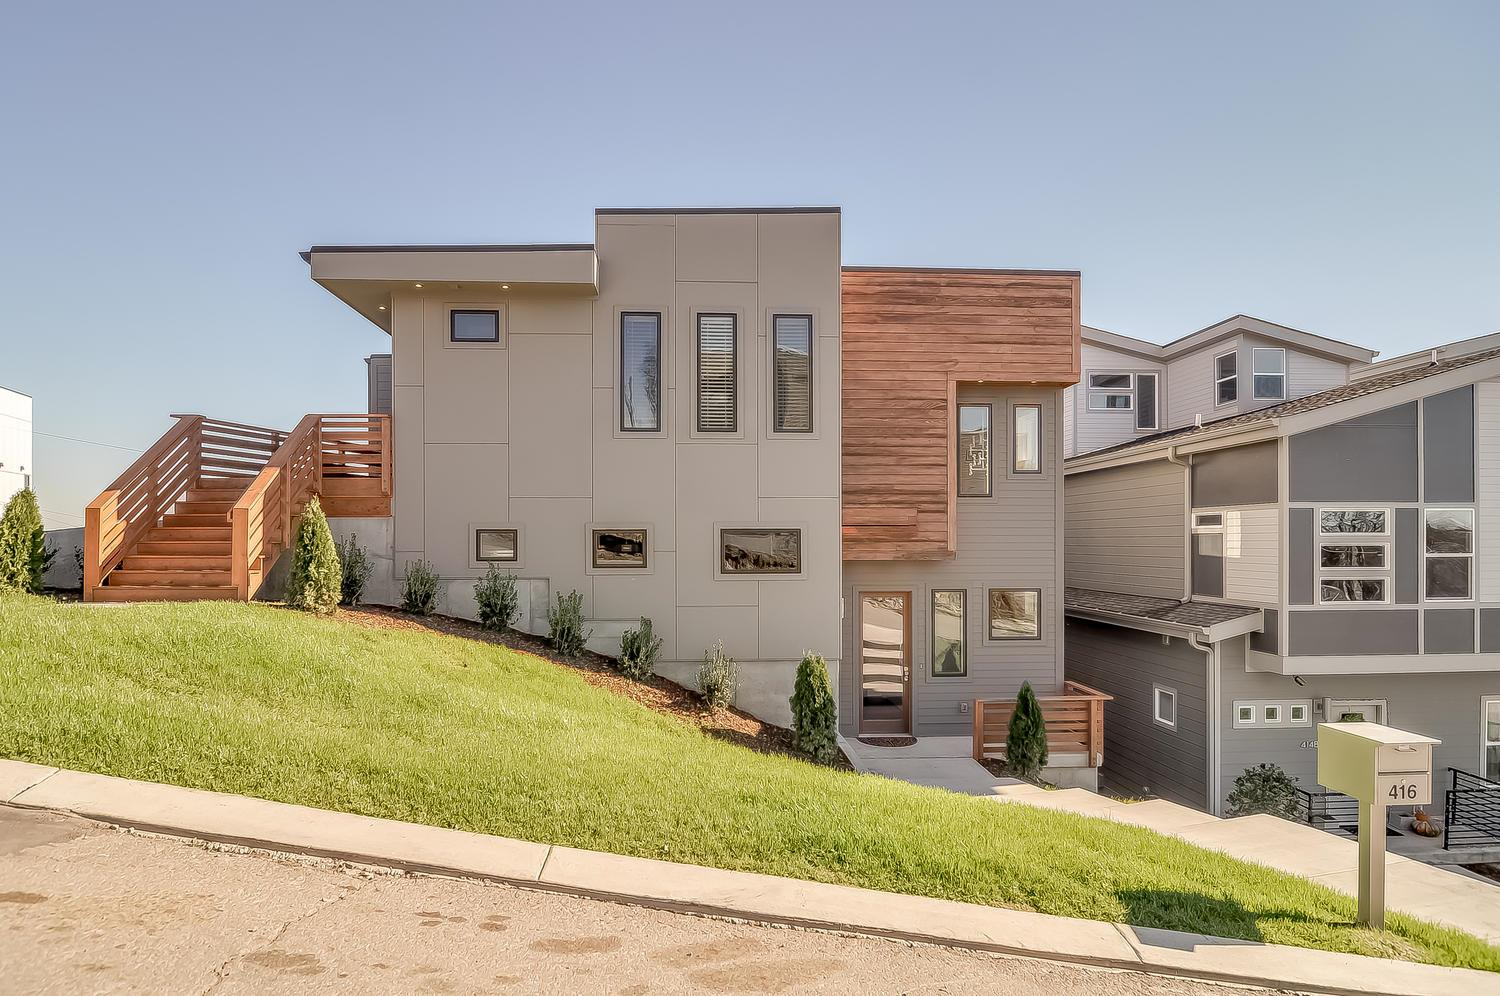 Built in 2015 3BR/ 3.5 BA in Sylvan Summit! Open floor plan, sharp kitchen with granite island bar seating, hardwoods,  and a 2 car garage with a nice driveway in the alley. The Best of View of Downtown Nashville with your own roof top terrace. A must see property in the Sylvan Summit area!!